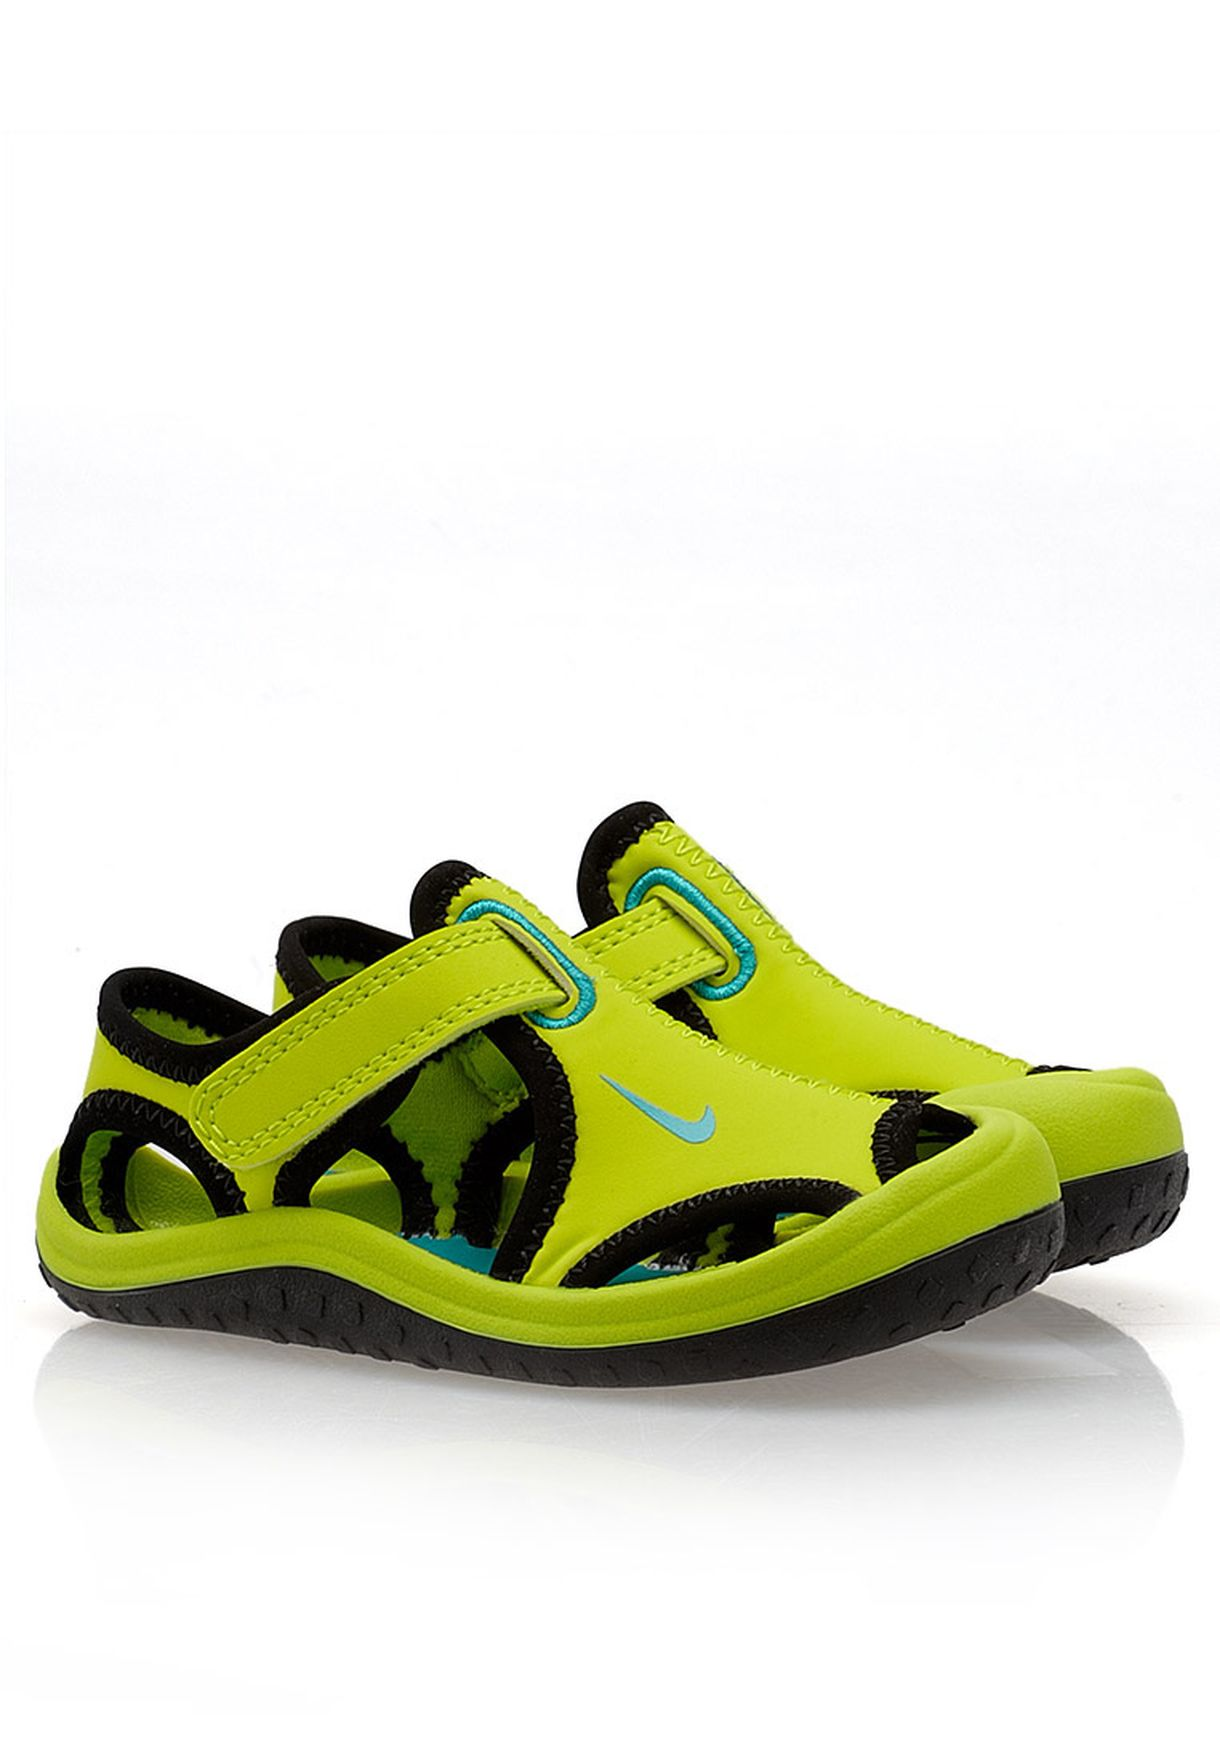 bbf51ee3402d Shop Nike green Sunray Protect Sandals 344925-300 for Kids in Qatar -  NI727SH37XLA